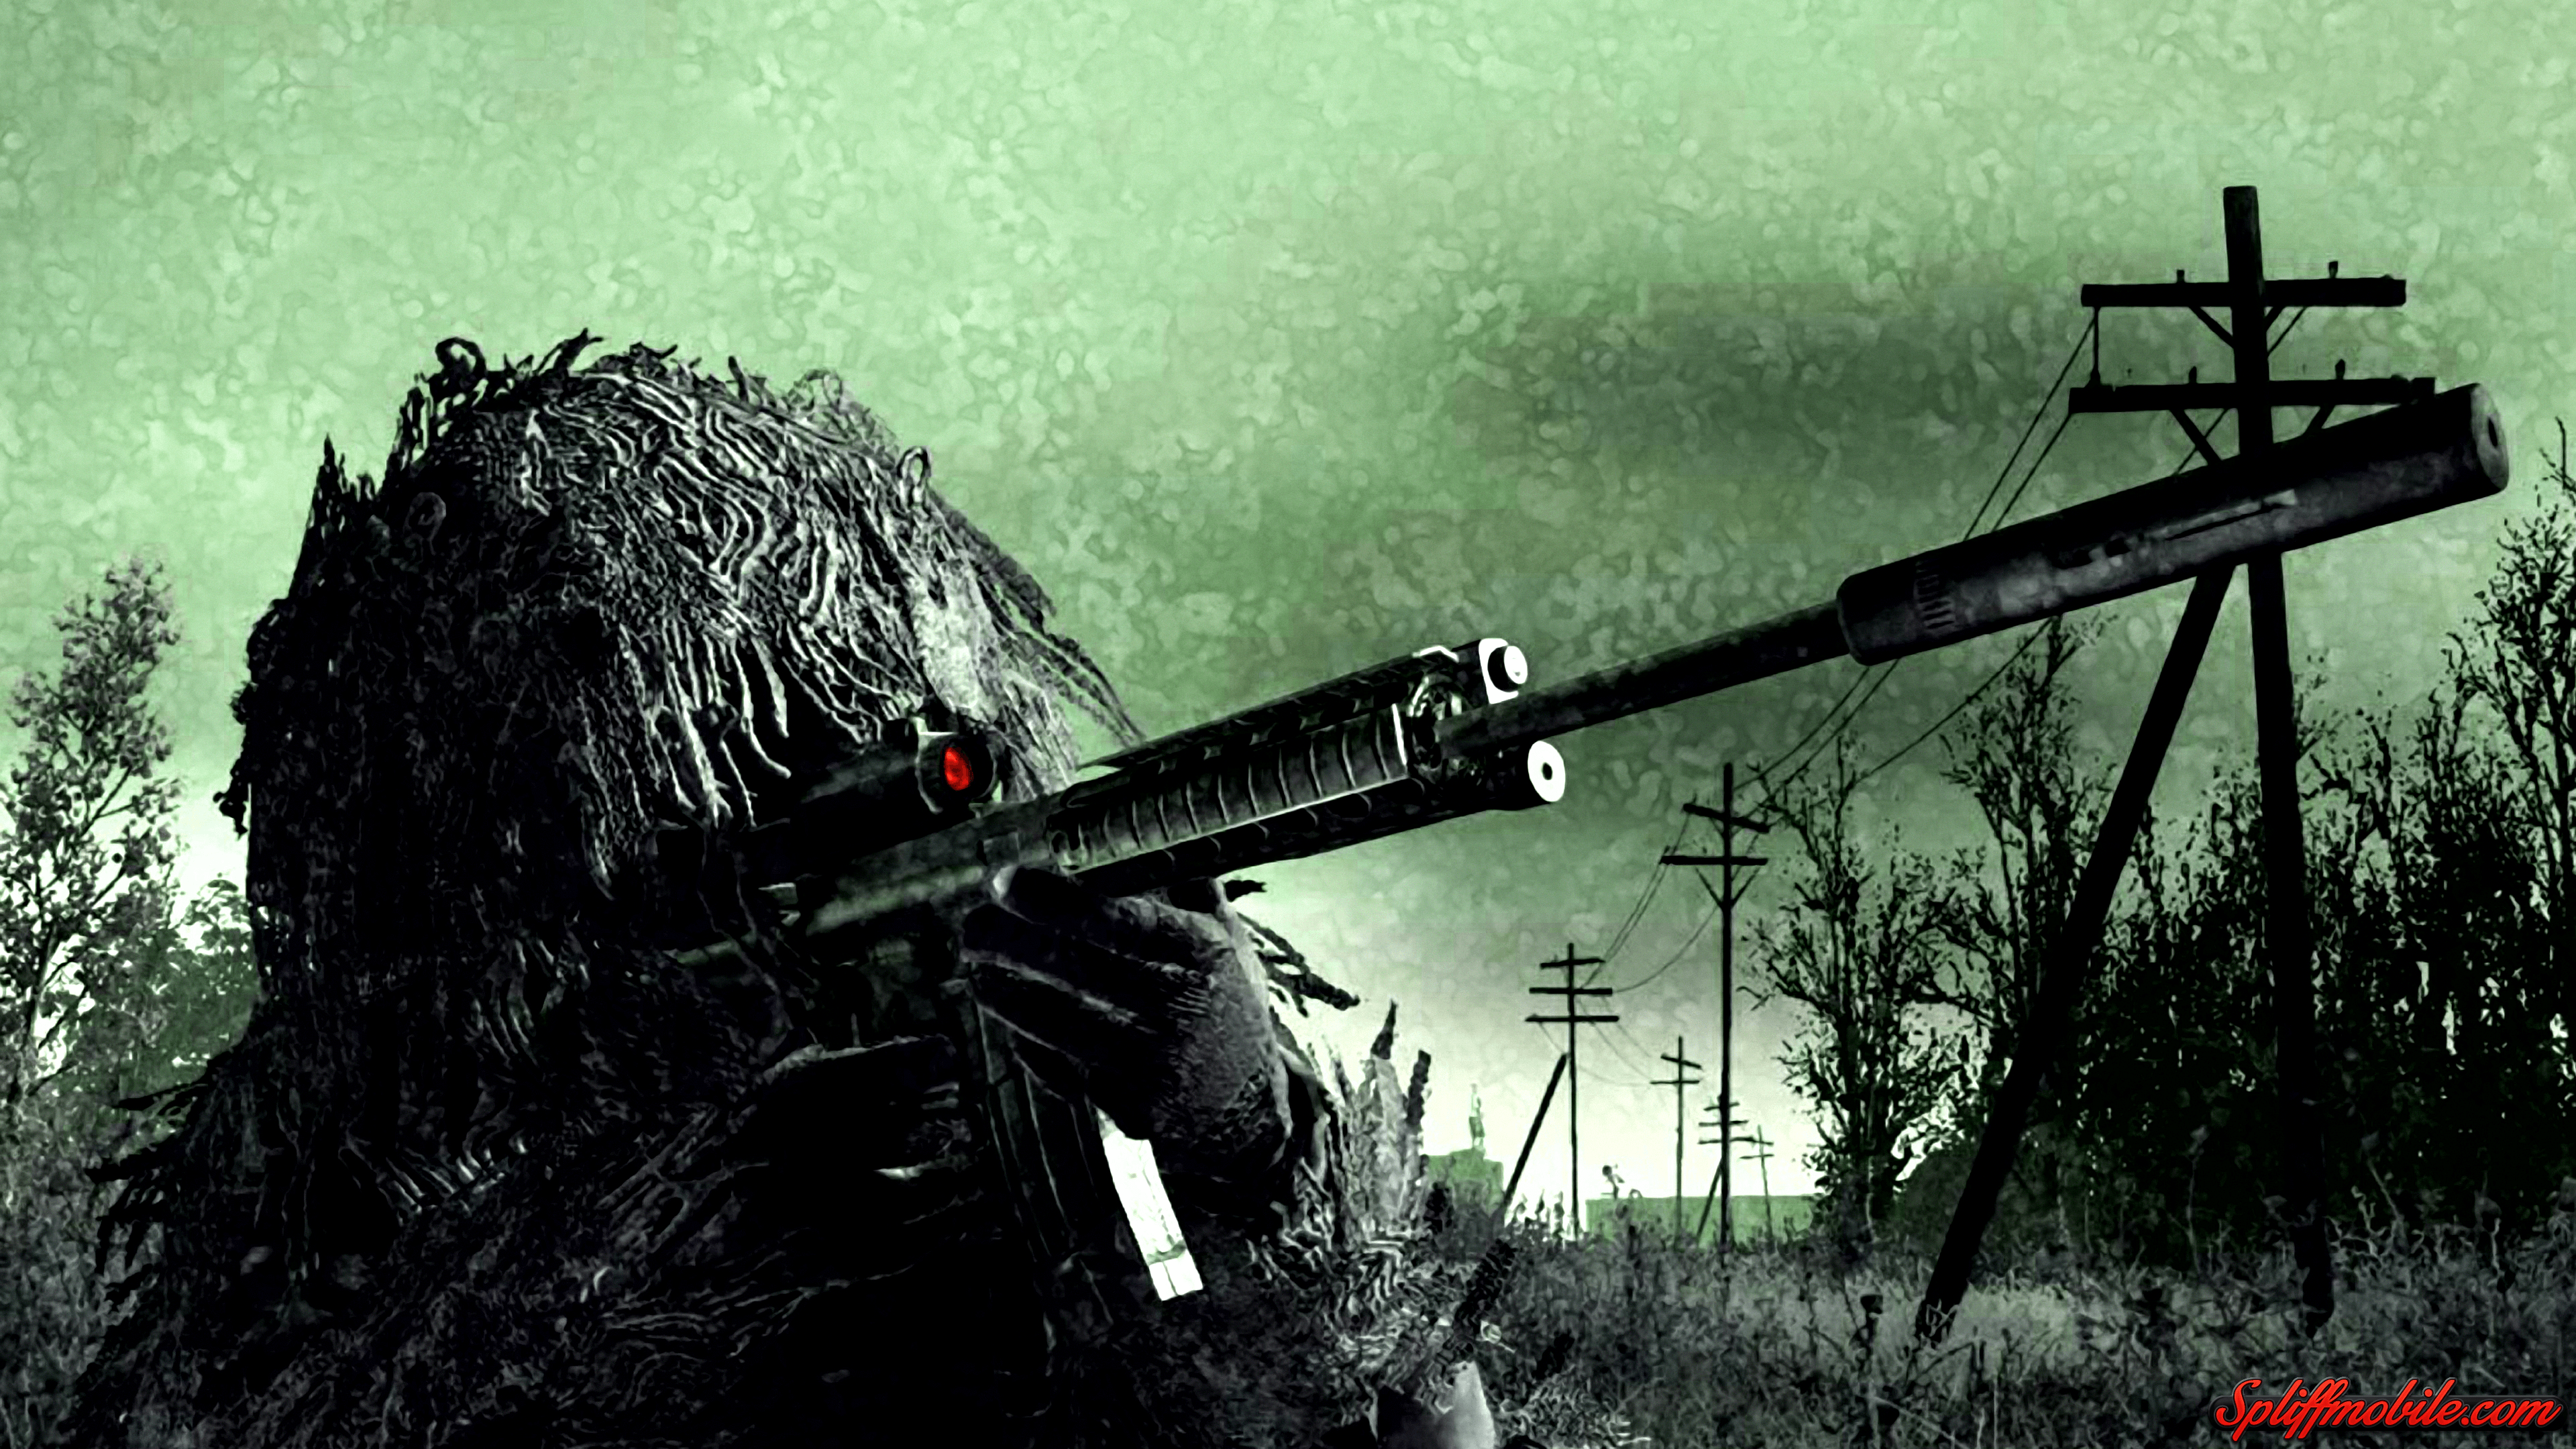 4K Call of Duty Wallpapers - Top Free 4K Call of Duty ...